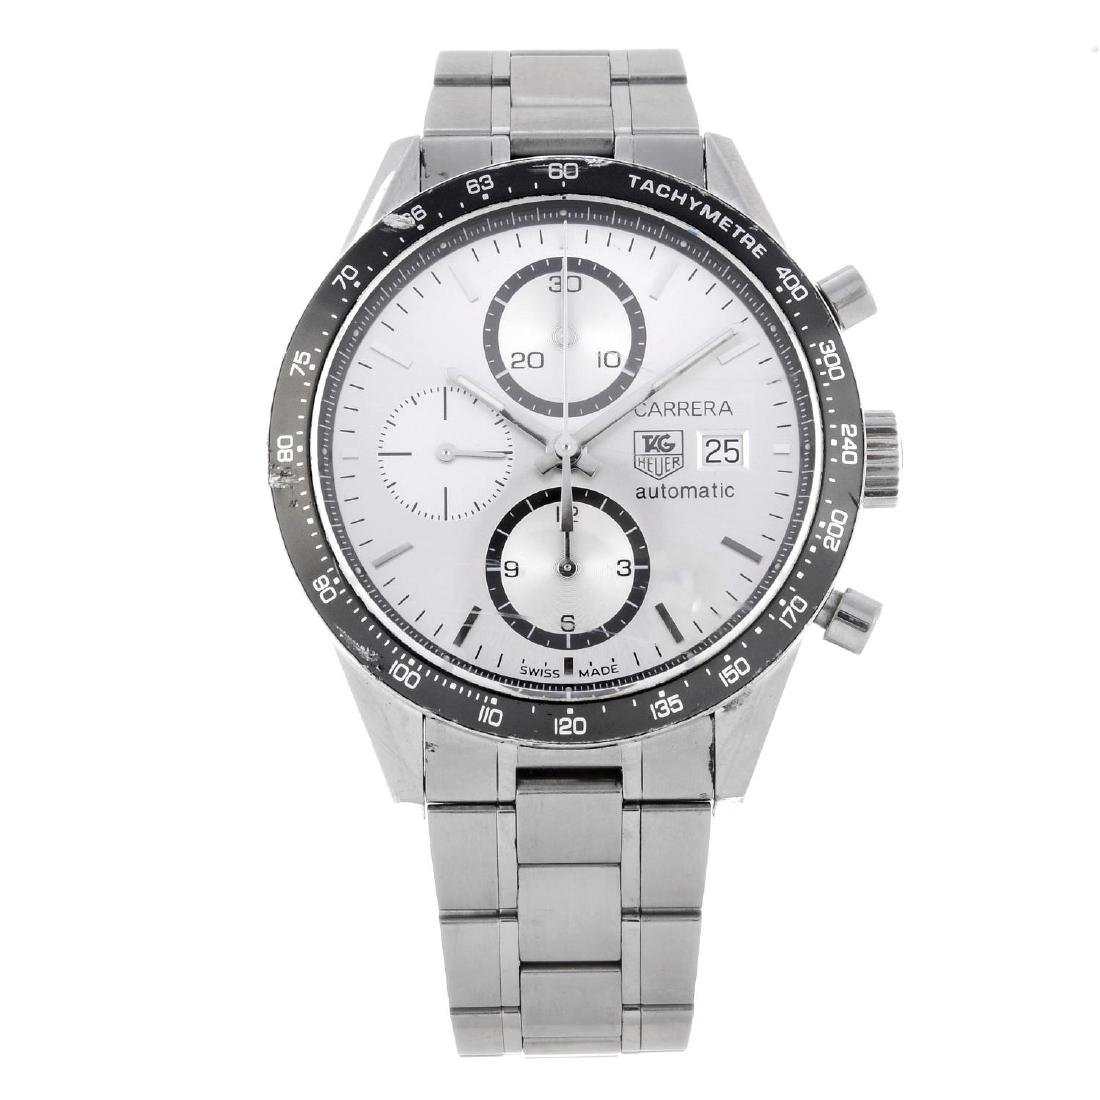 TAG HEUER - a gentleman's Carrera chronograph bracelet